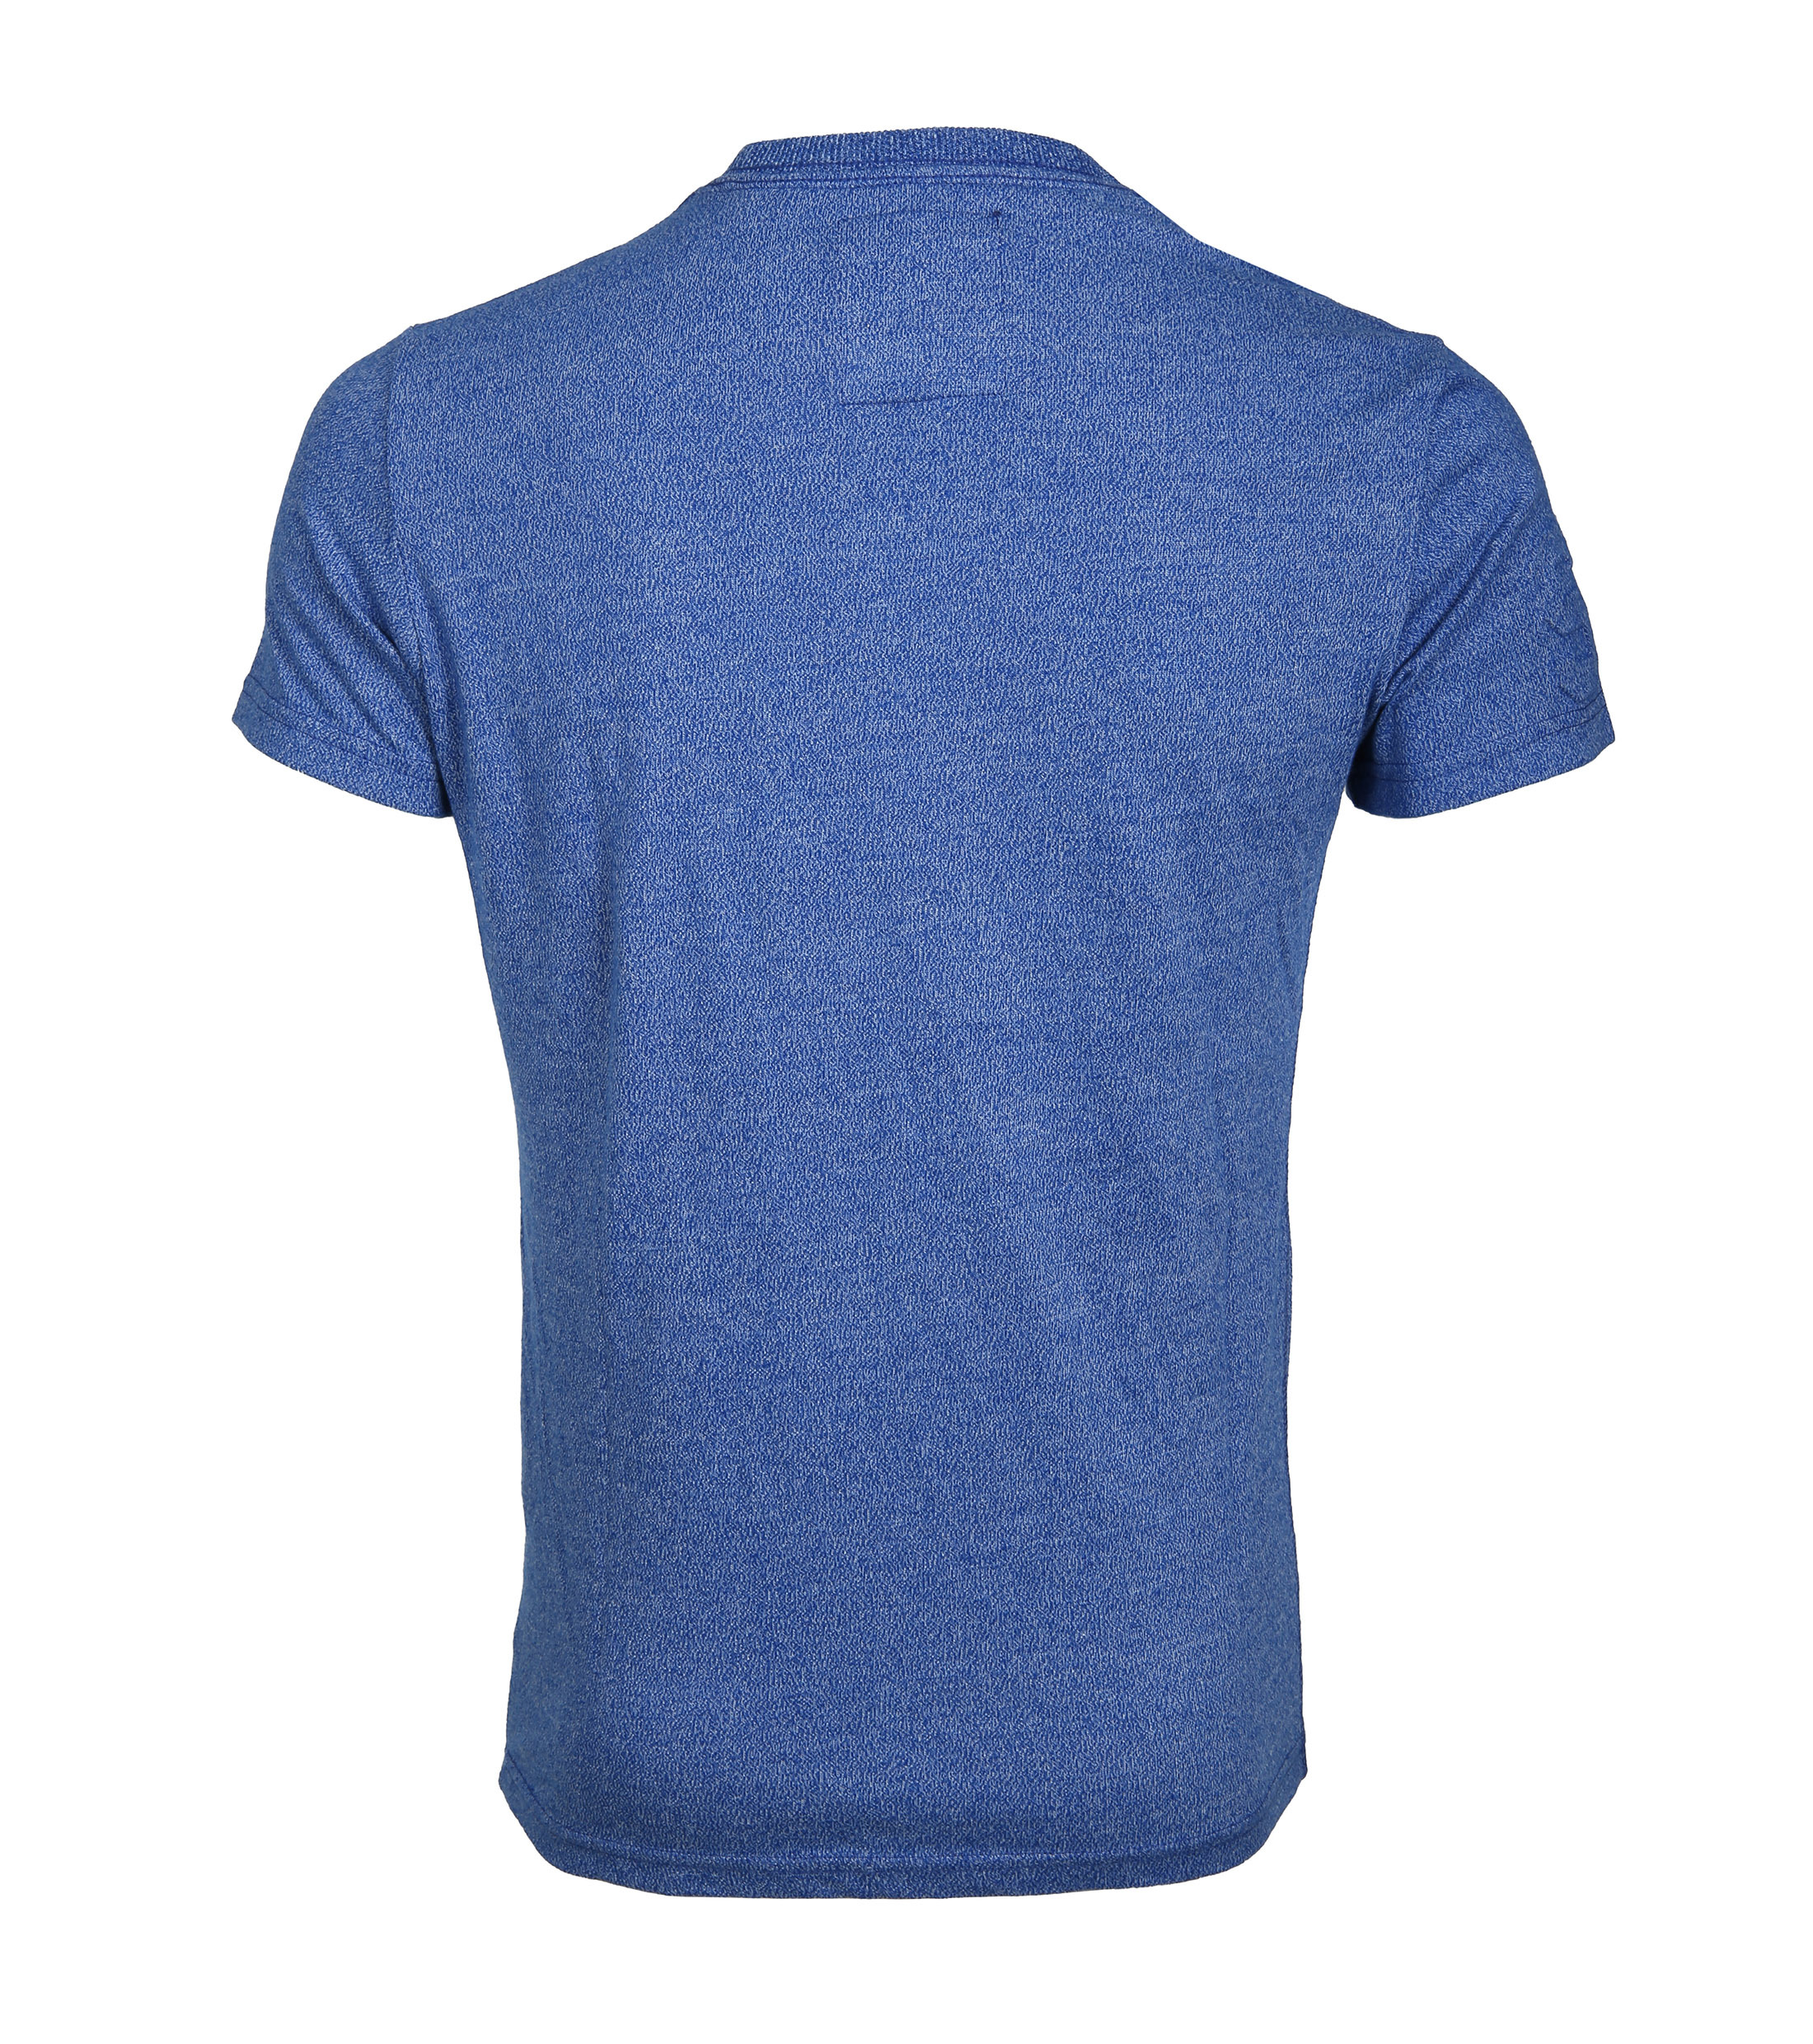 Superdry T-Shirt Authentic Embossed Blauw foto 2